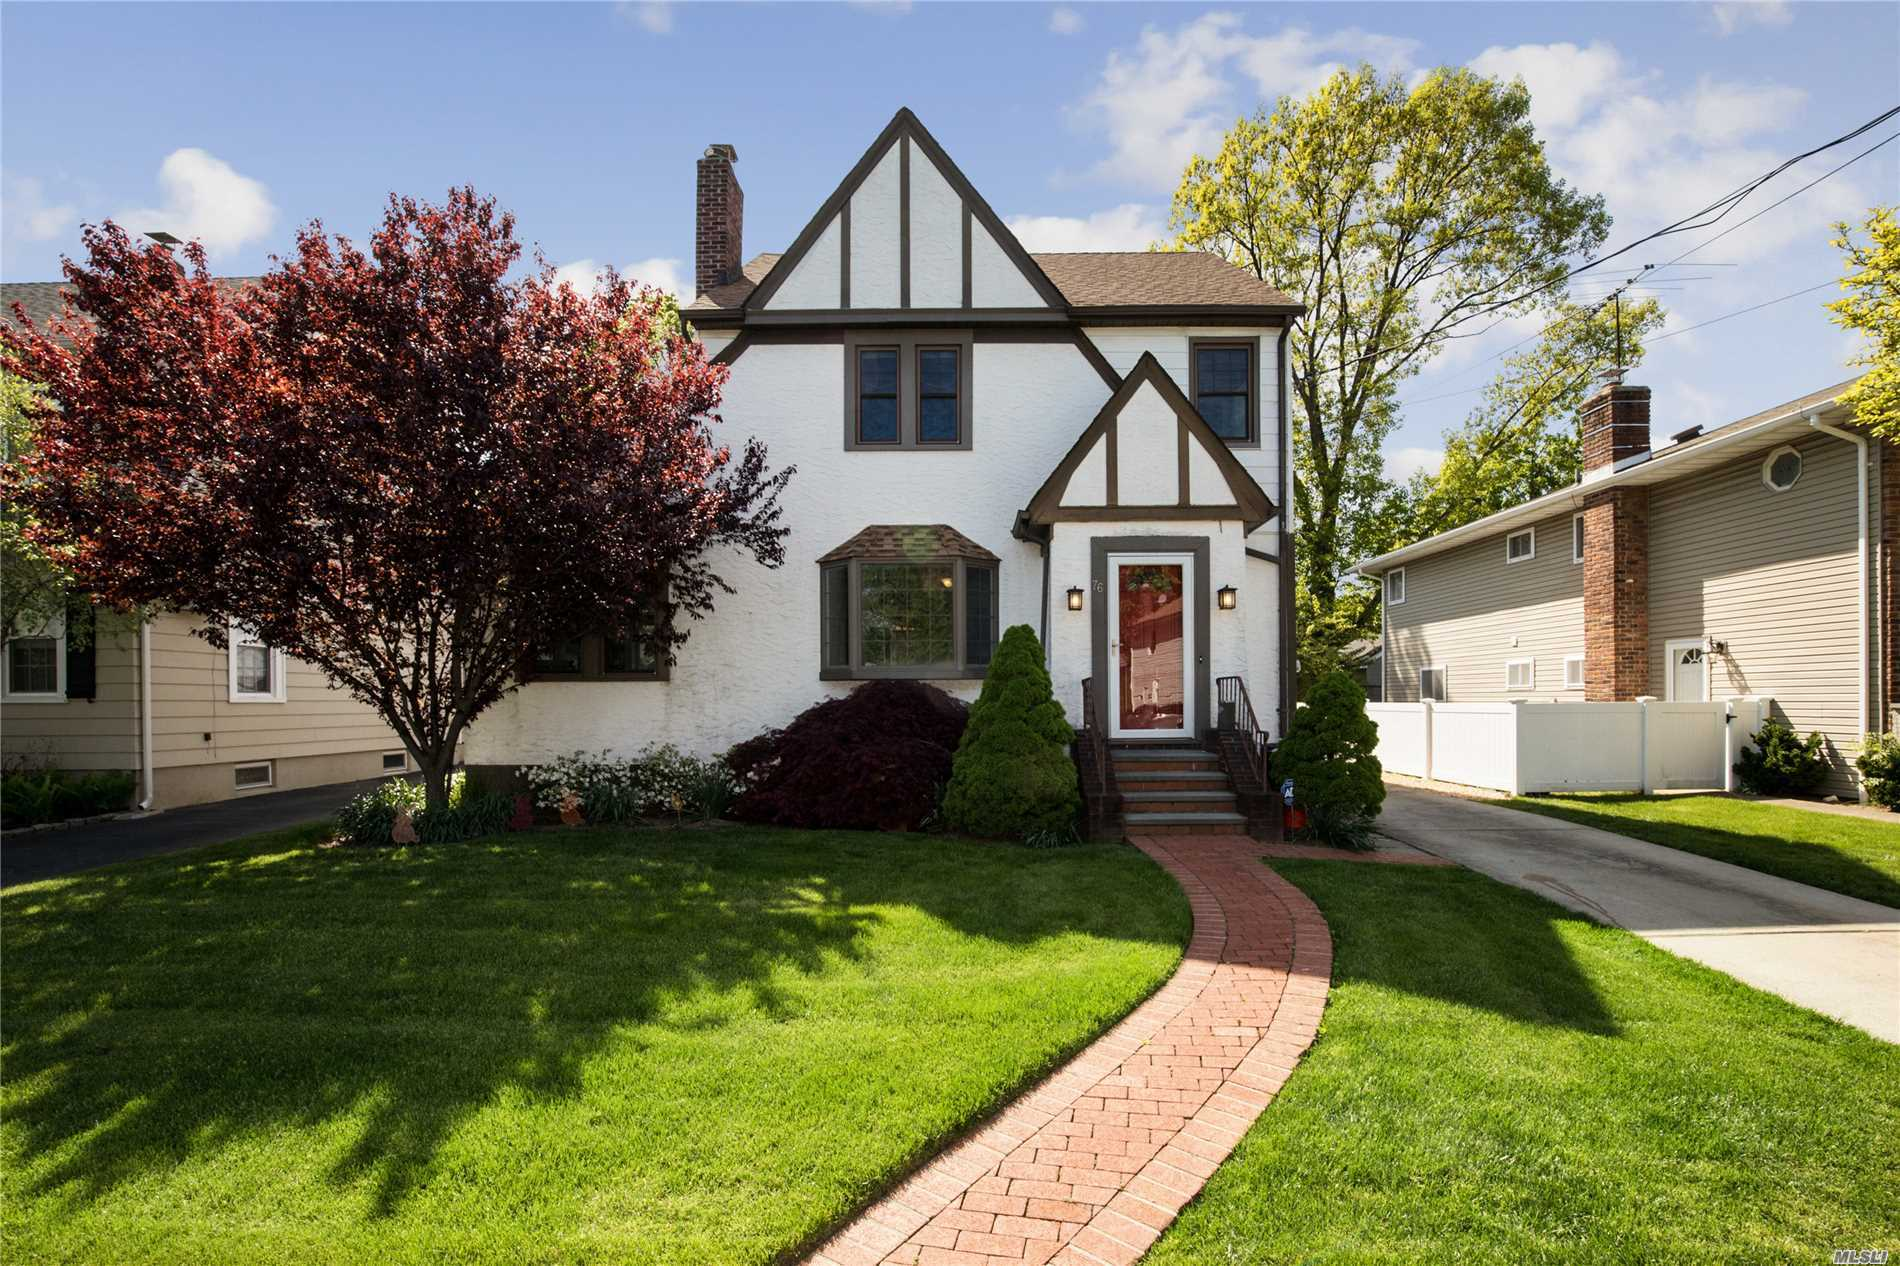 Amazing Colonial In The Inc. Village Of Rockville Centre. Formal LR w/FPL, Formal DR, Office, Granite EIK,  4 Bdrms, 2 Full Baths, Walk Up Attic. Fin. Basement W/Egress, Covered Porch, Garage. Updated Windows, 200 Amp Electric, IGS, New CAC & Heating System. Close To Village & Public Transportation. Move Right In !Elementary #5, Oceanside Middle School & HS.